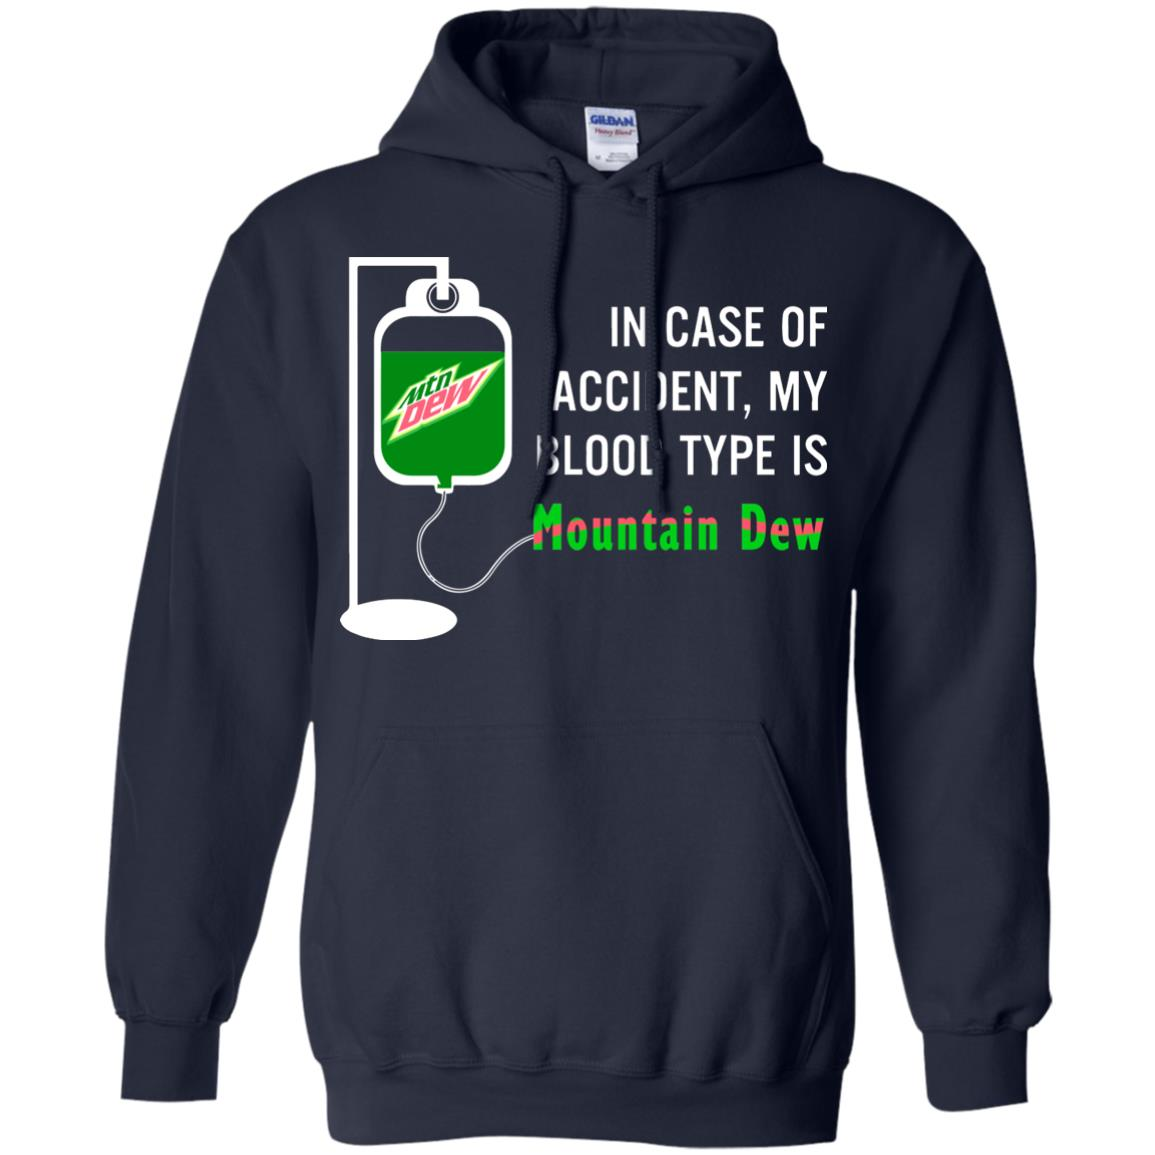 image 497 - In Case Of Accident My Blood Type Is Mountain Dew Shirt